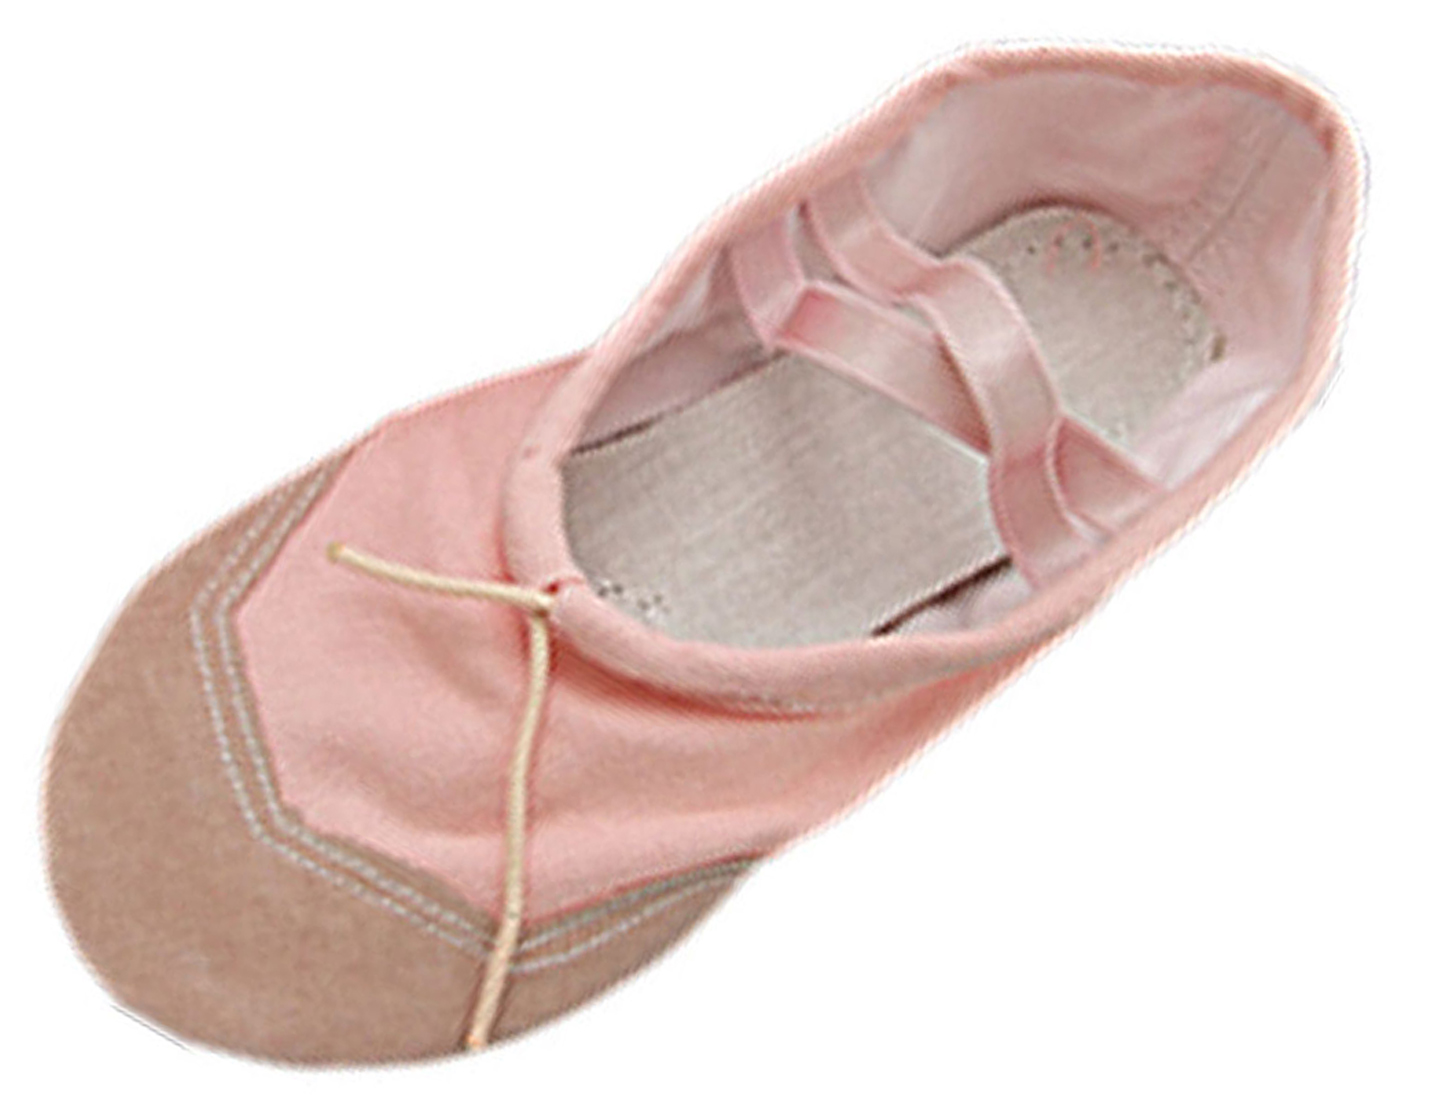 Pink Soft Fabric Dancing Dacing Ballet Ladies' Shoes Size 8.5